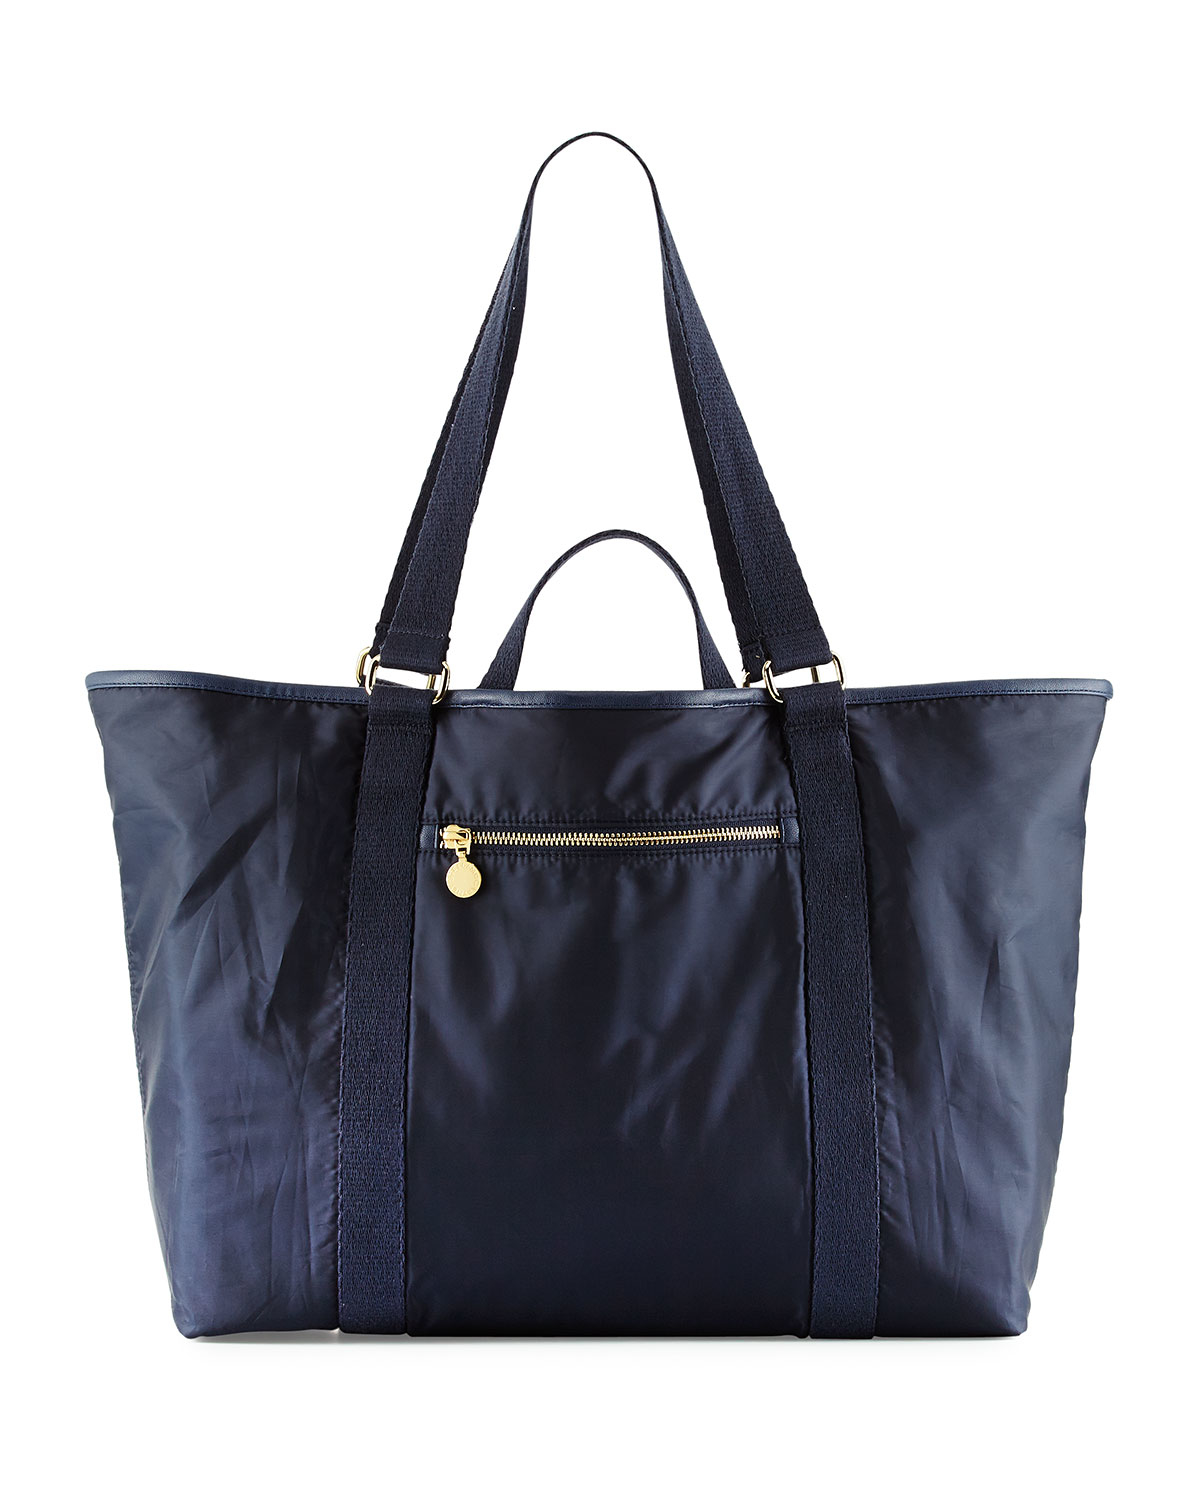 stella mccartney faux leather trim diaper bag in blue lyst. Black Bedroom Furniture Sets. Home Design Ideas